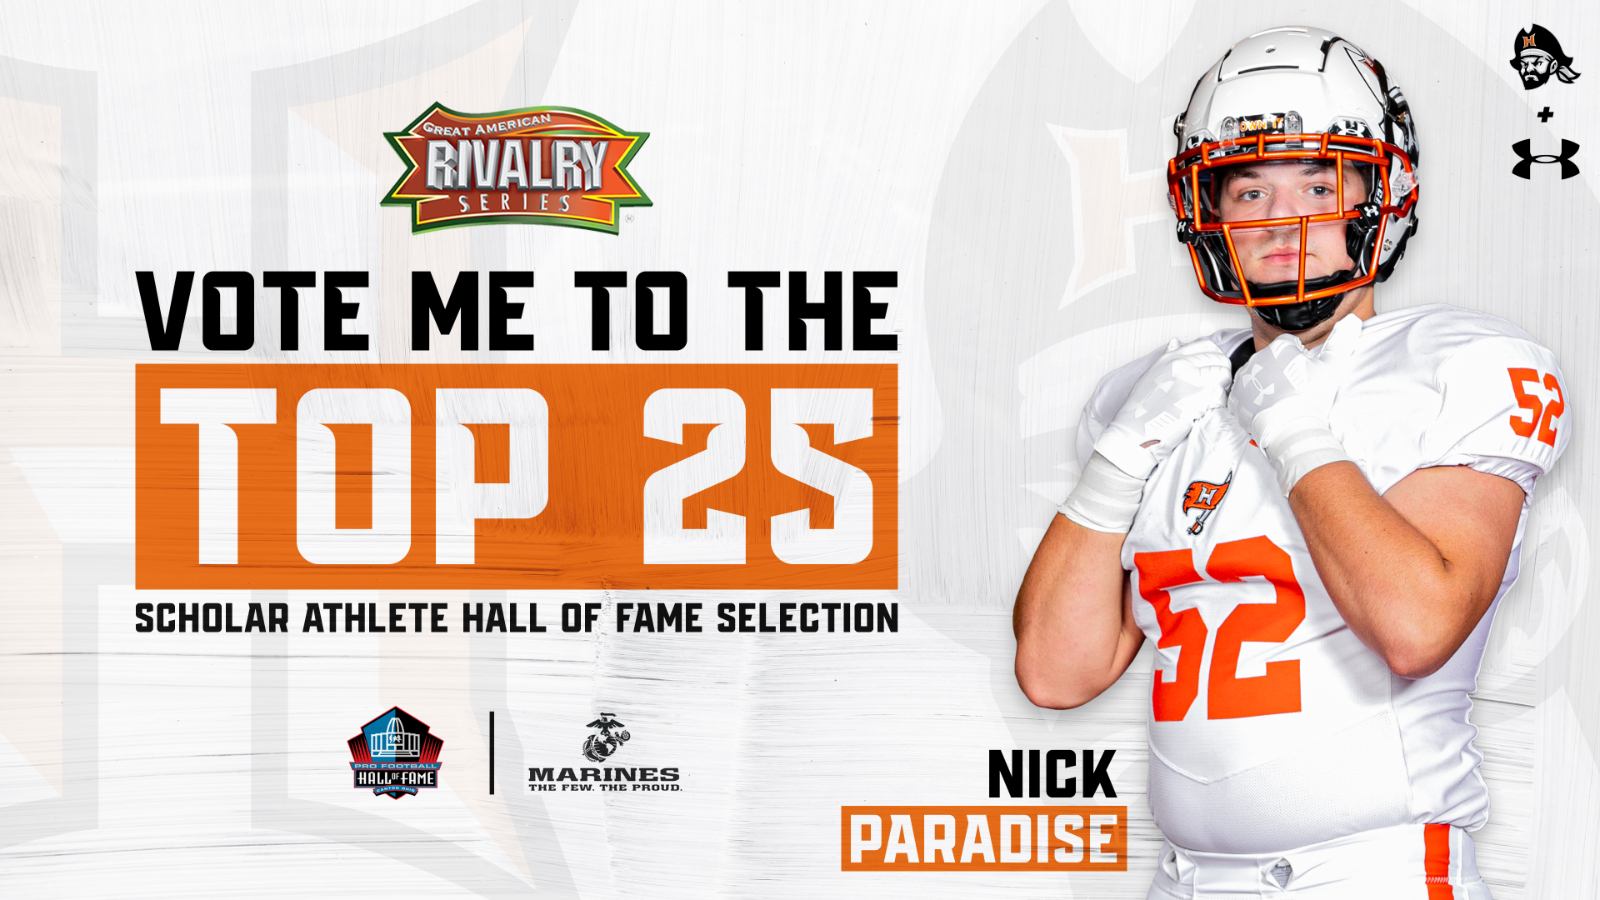 Vote for Nick Paradise to be a part of the 2020 Hall of Fame